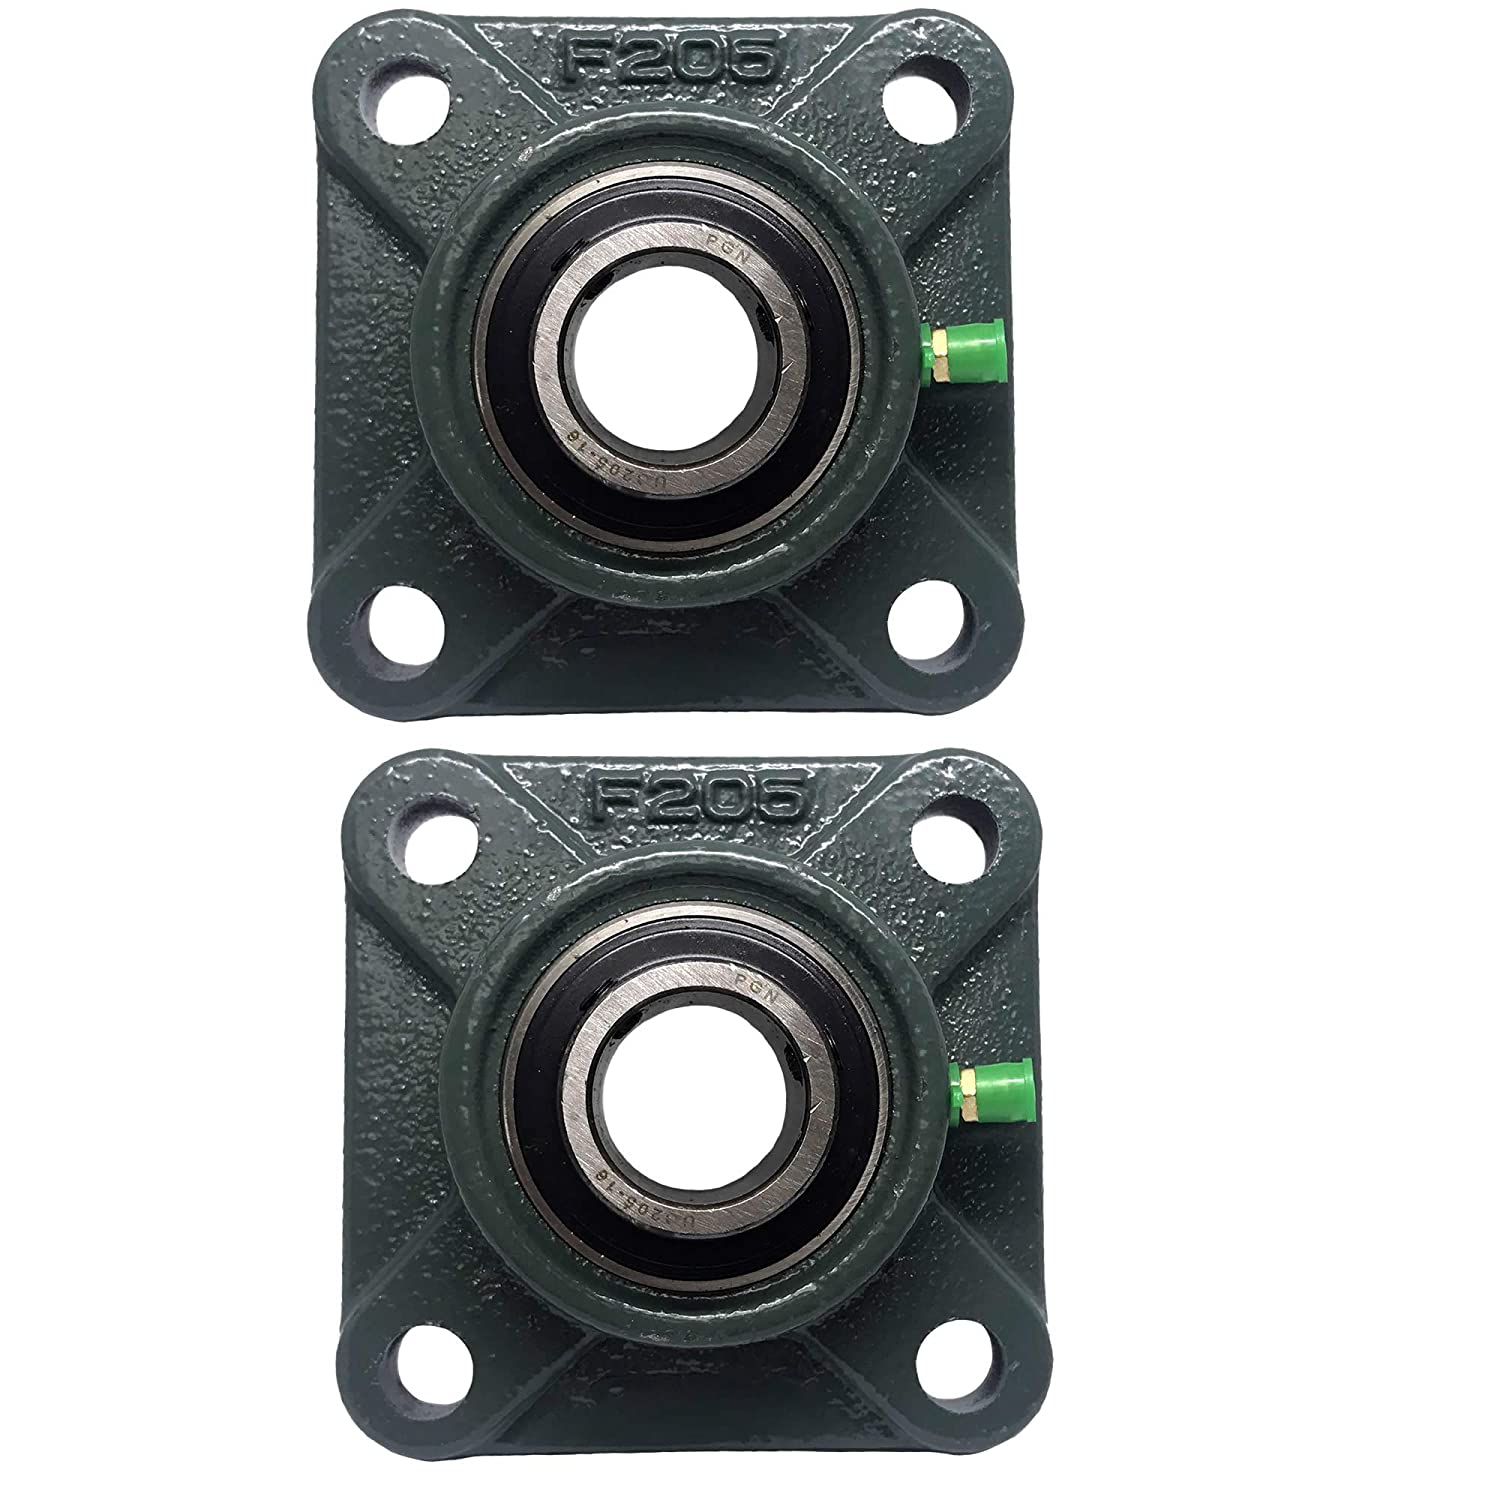 quality assurance Sale SALE% OFF PGN - UCF205-16 Pillow Block Square Bo Bearing Mounted 1